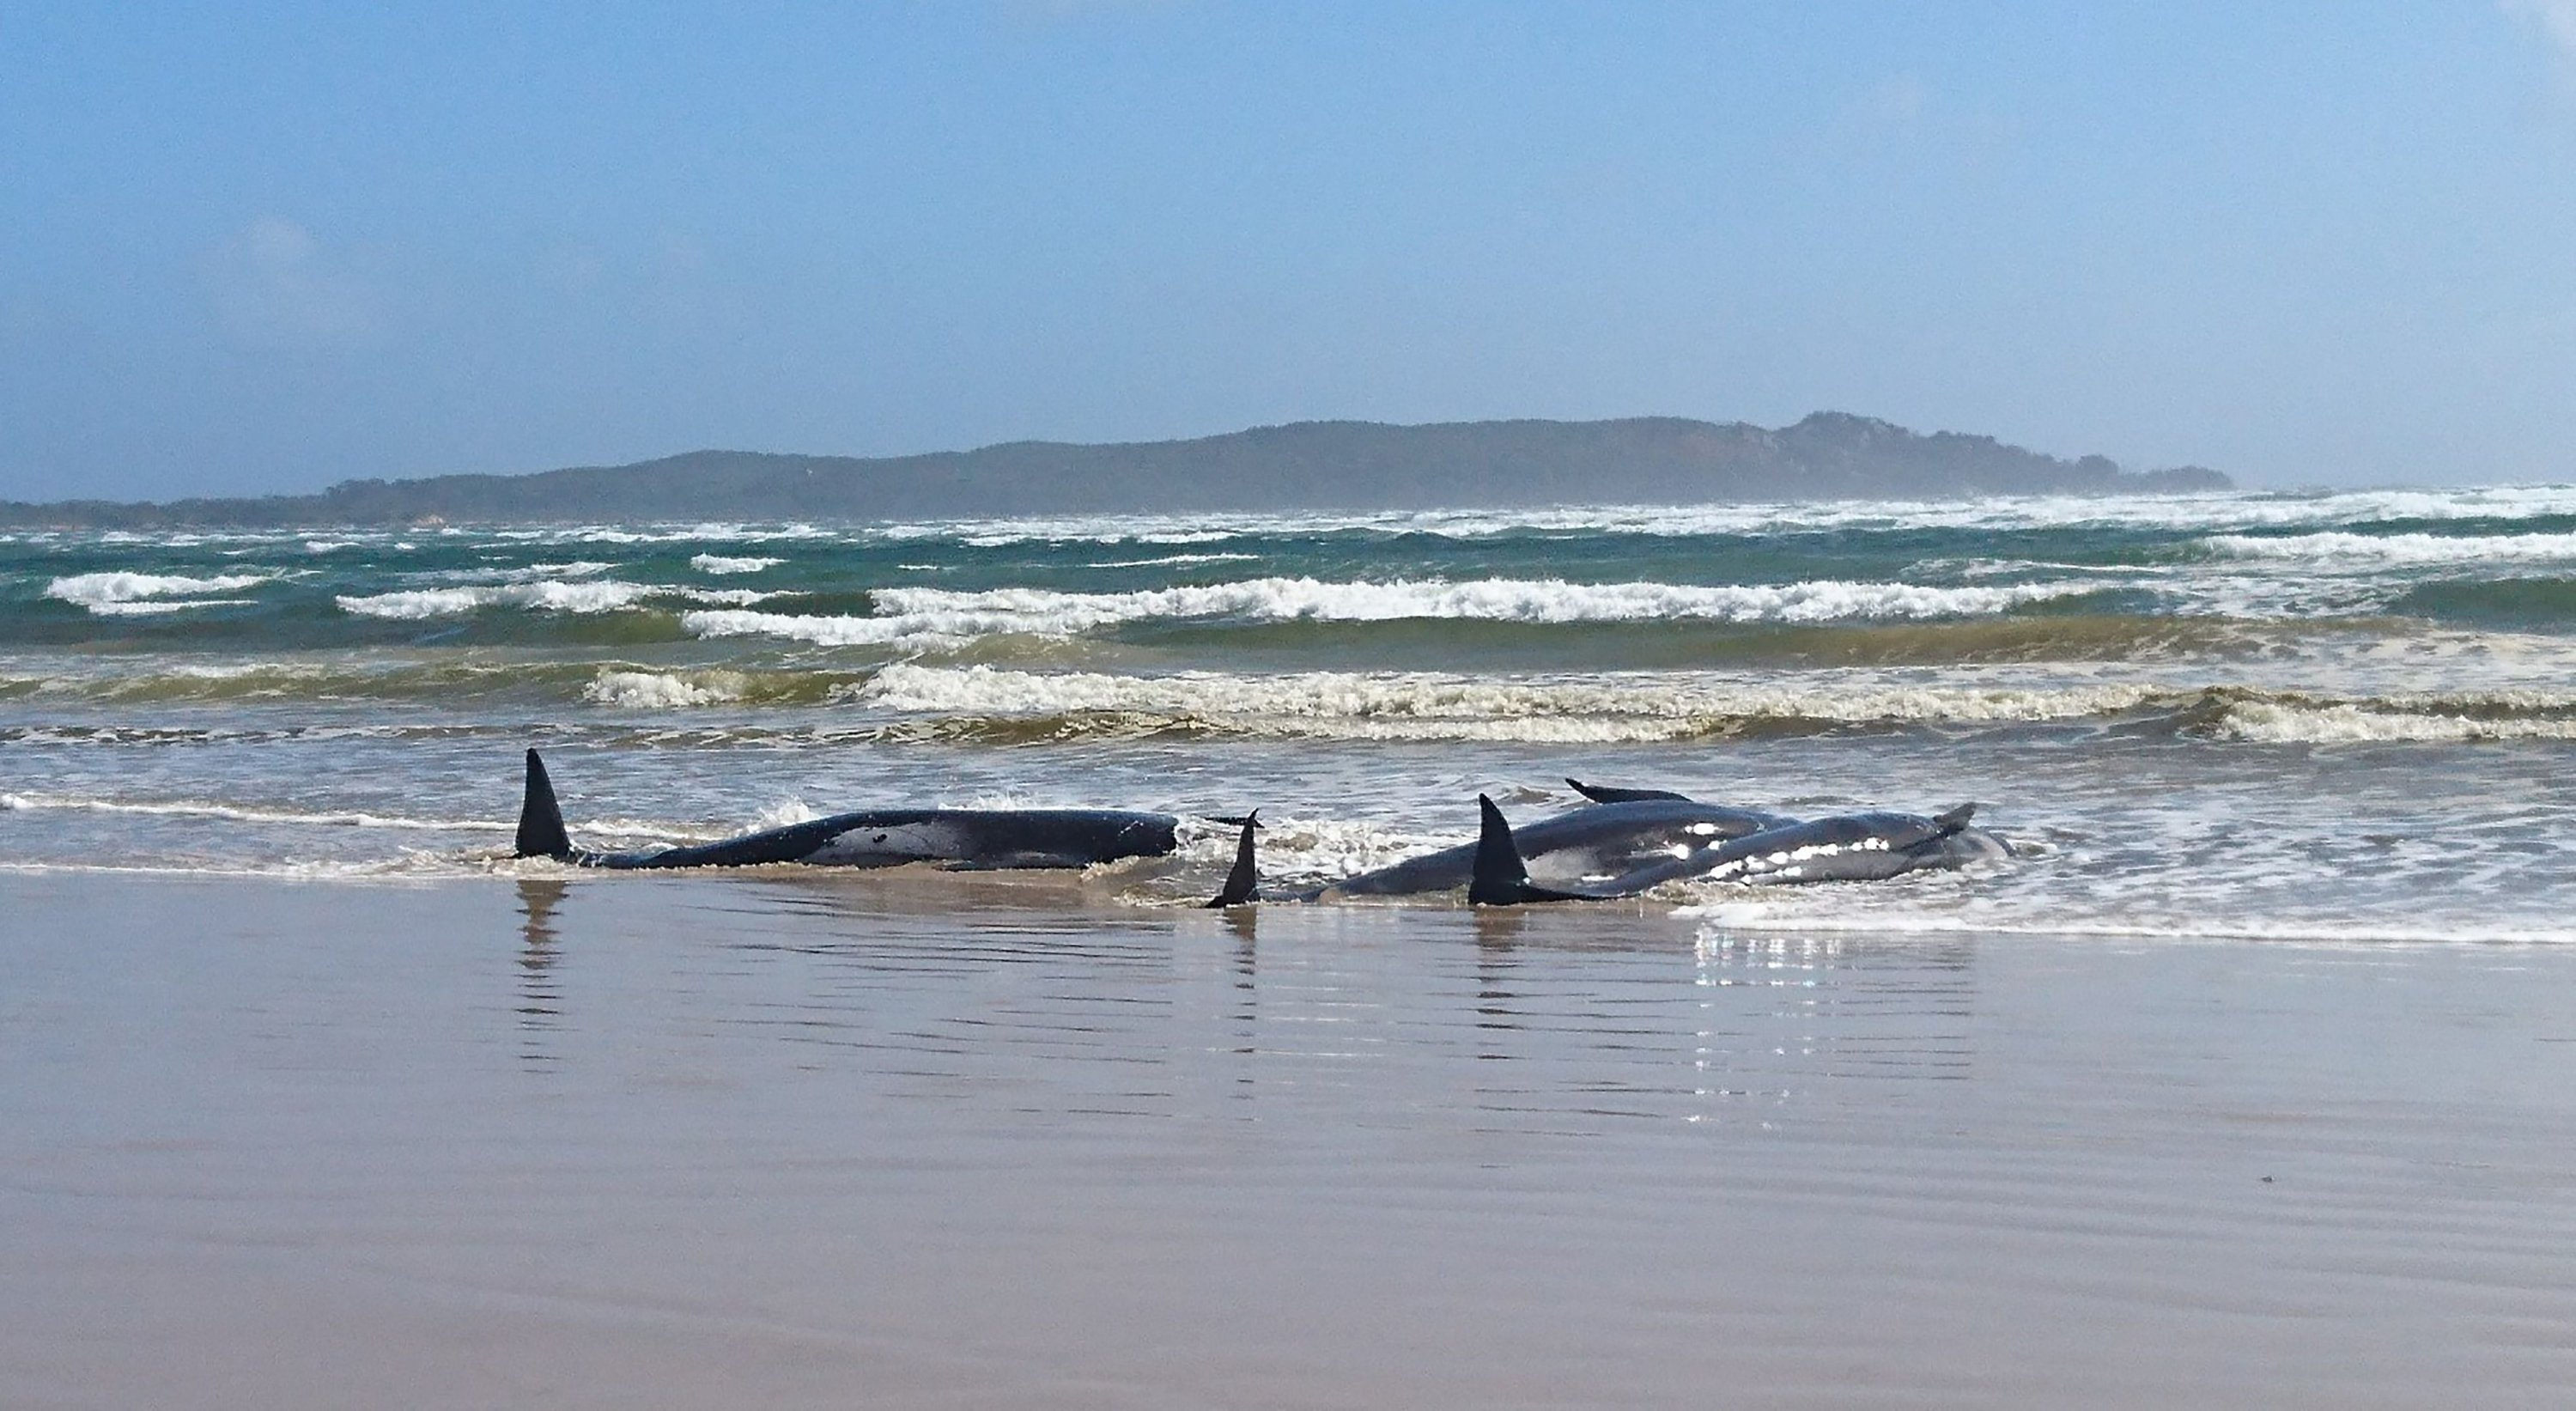 A handout photo taken and released by the Tasmania Police shows whales stranded on a sandbar in Macquarie Harbour on the rugged west coast of Tasmania, Sept. 21, 2020 (TASMANIA POLICE / AFP Photo)